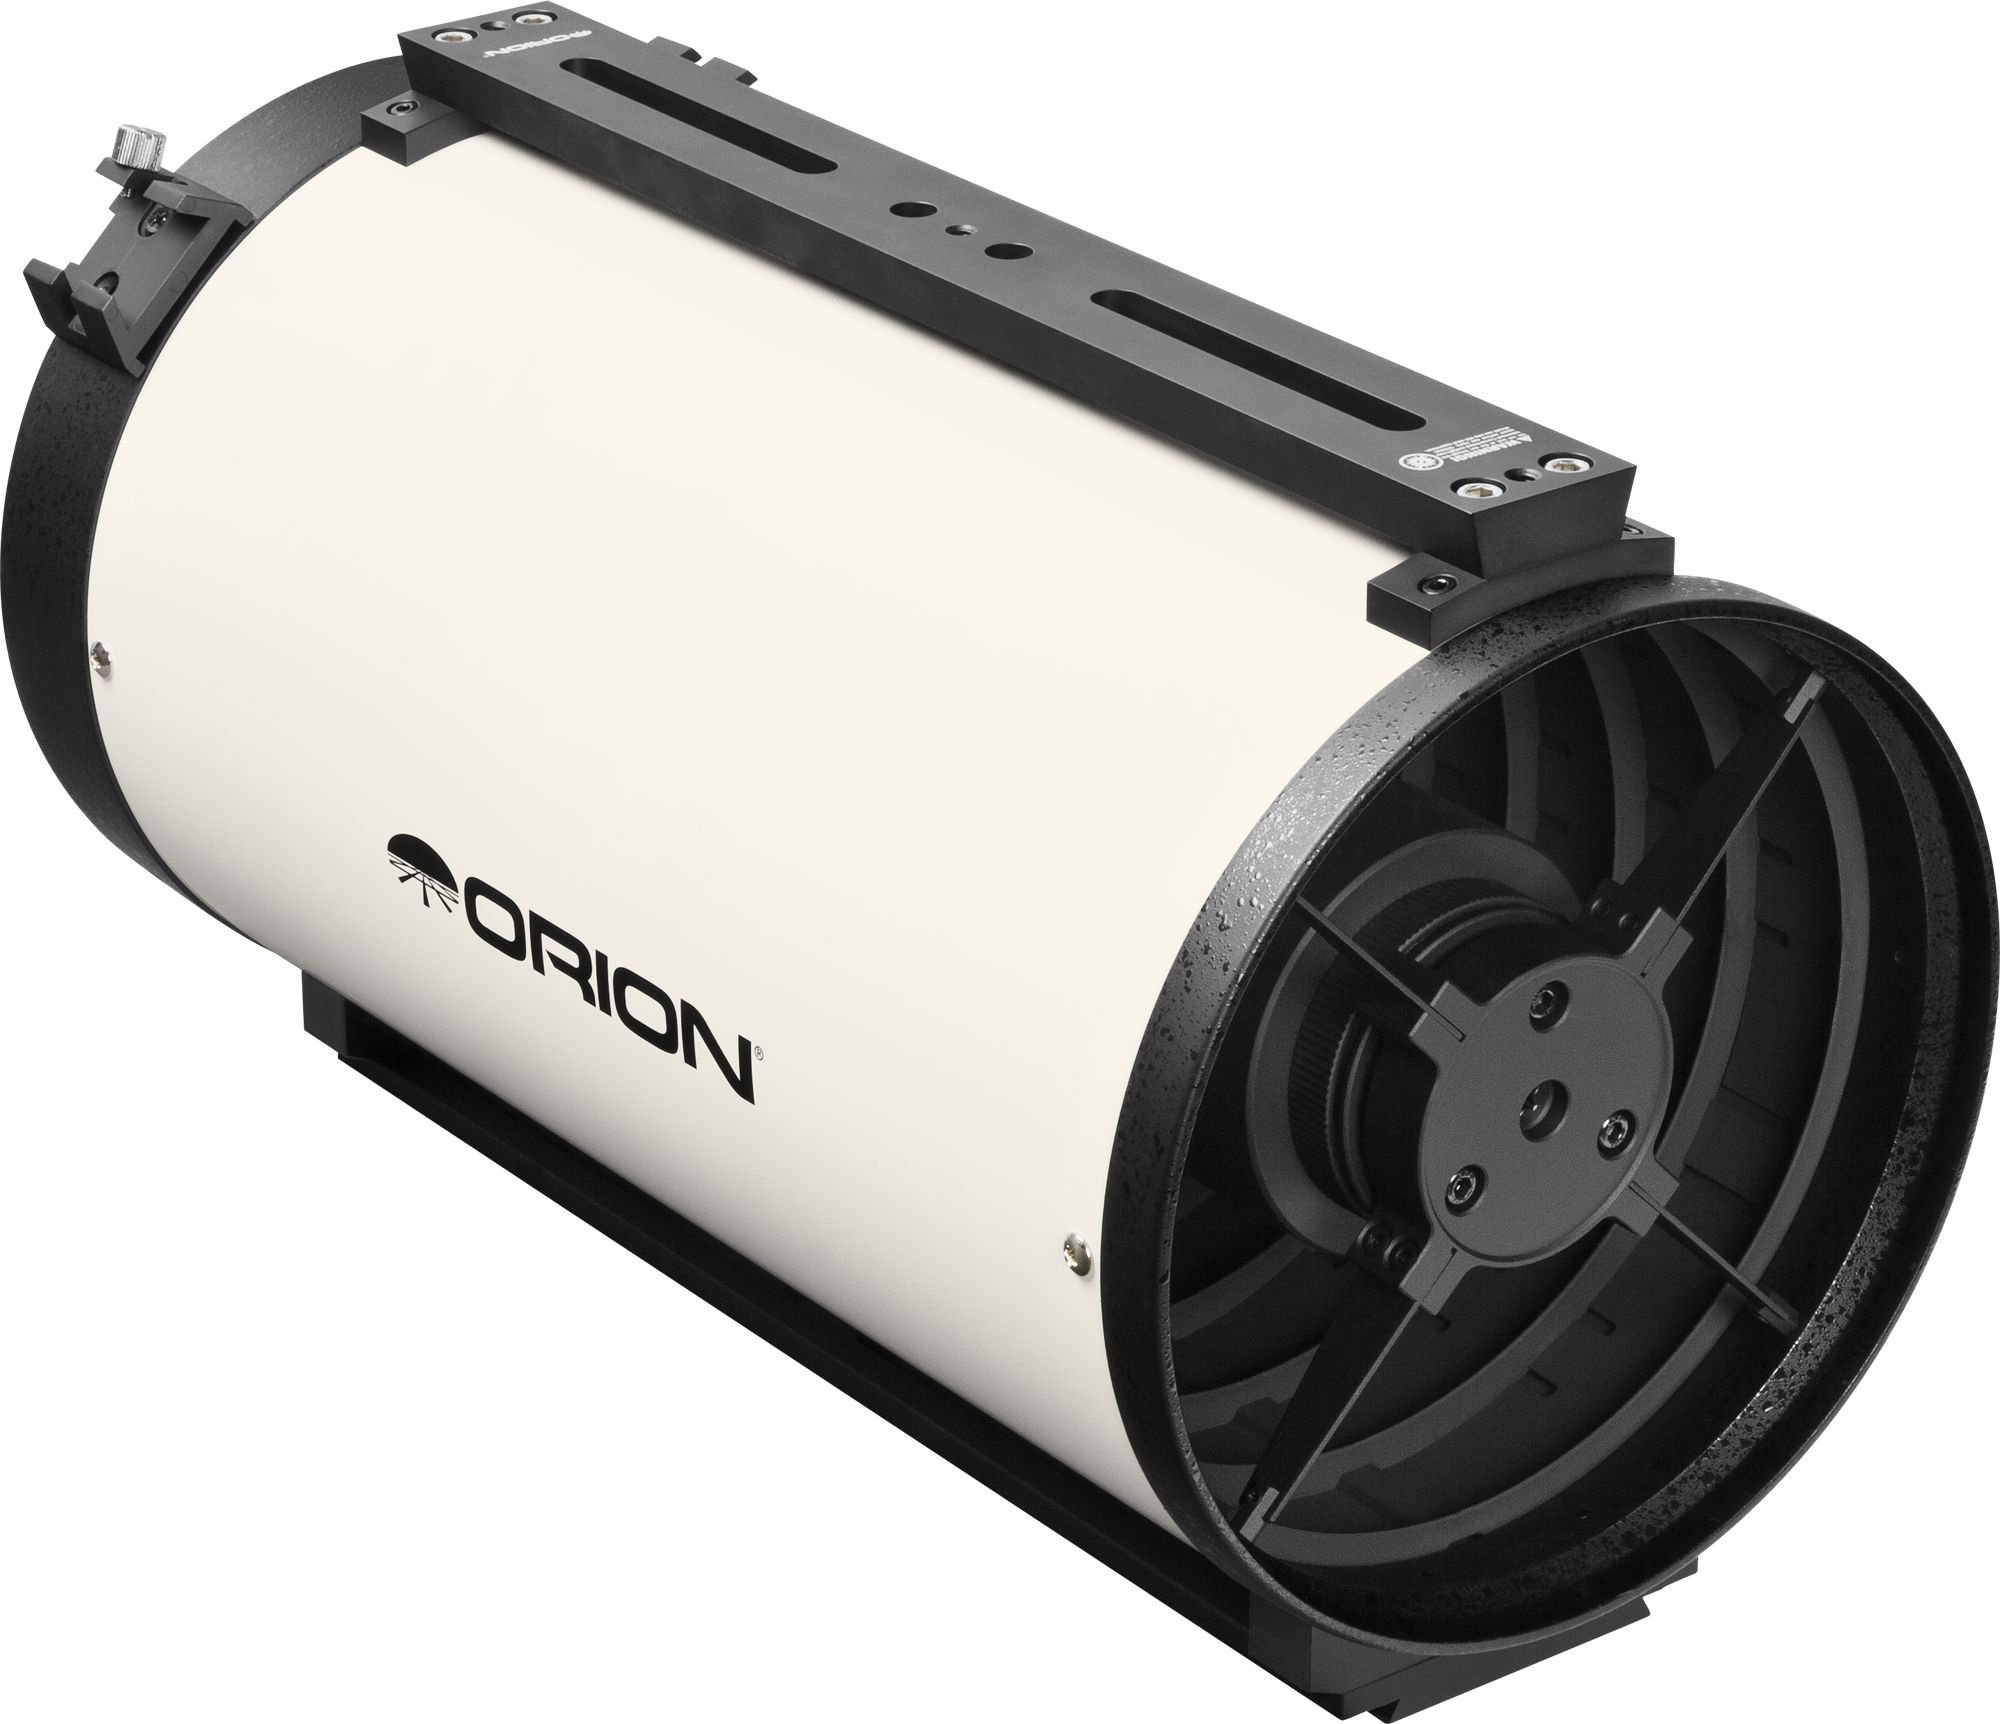 Orion 08267 Ritchey-Chretien 8 inch F/8 Optical Tube Assembly (White) by Orion